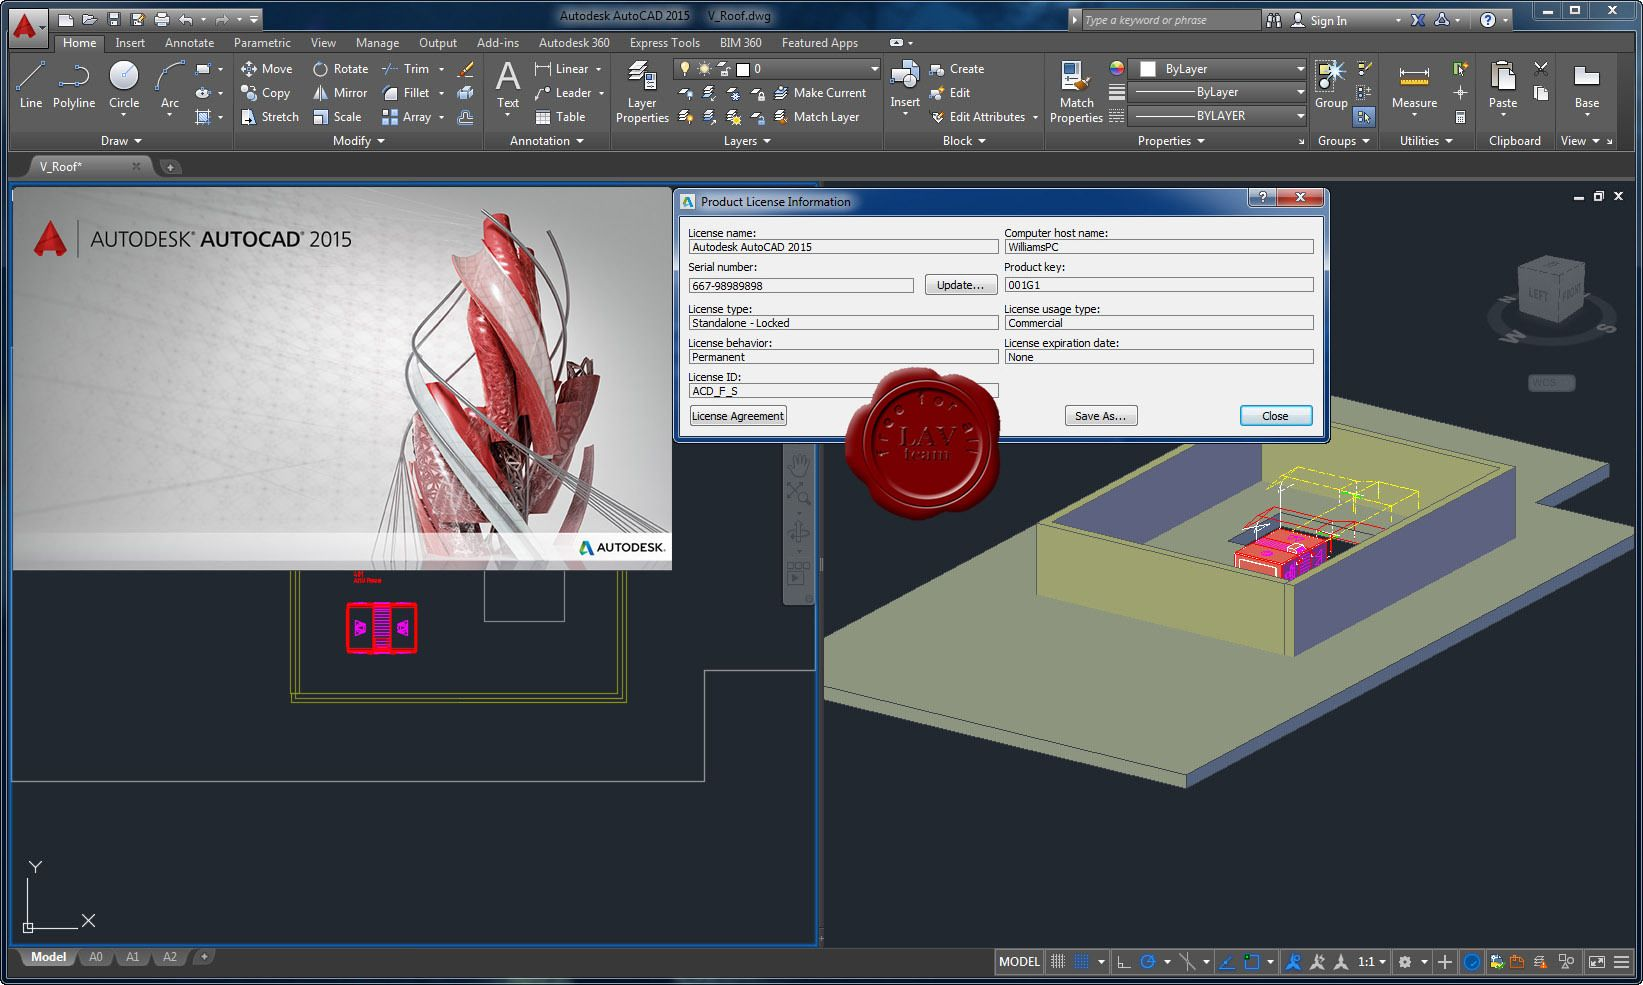 autodesk autocad 2015 serial number free download